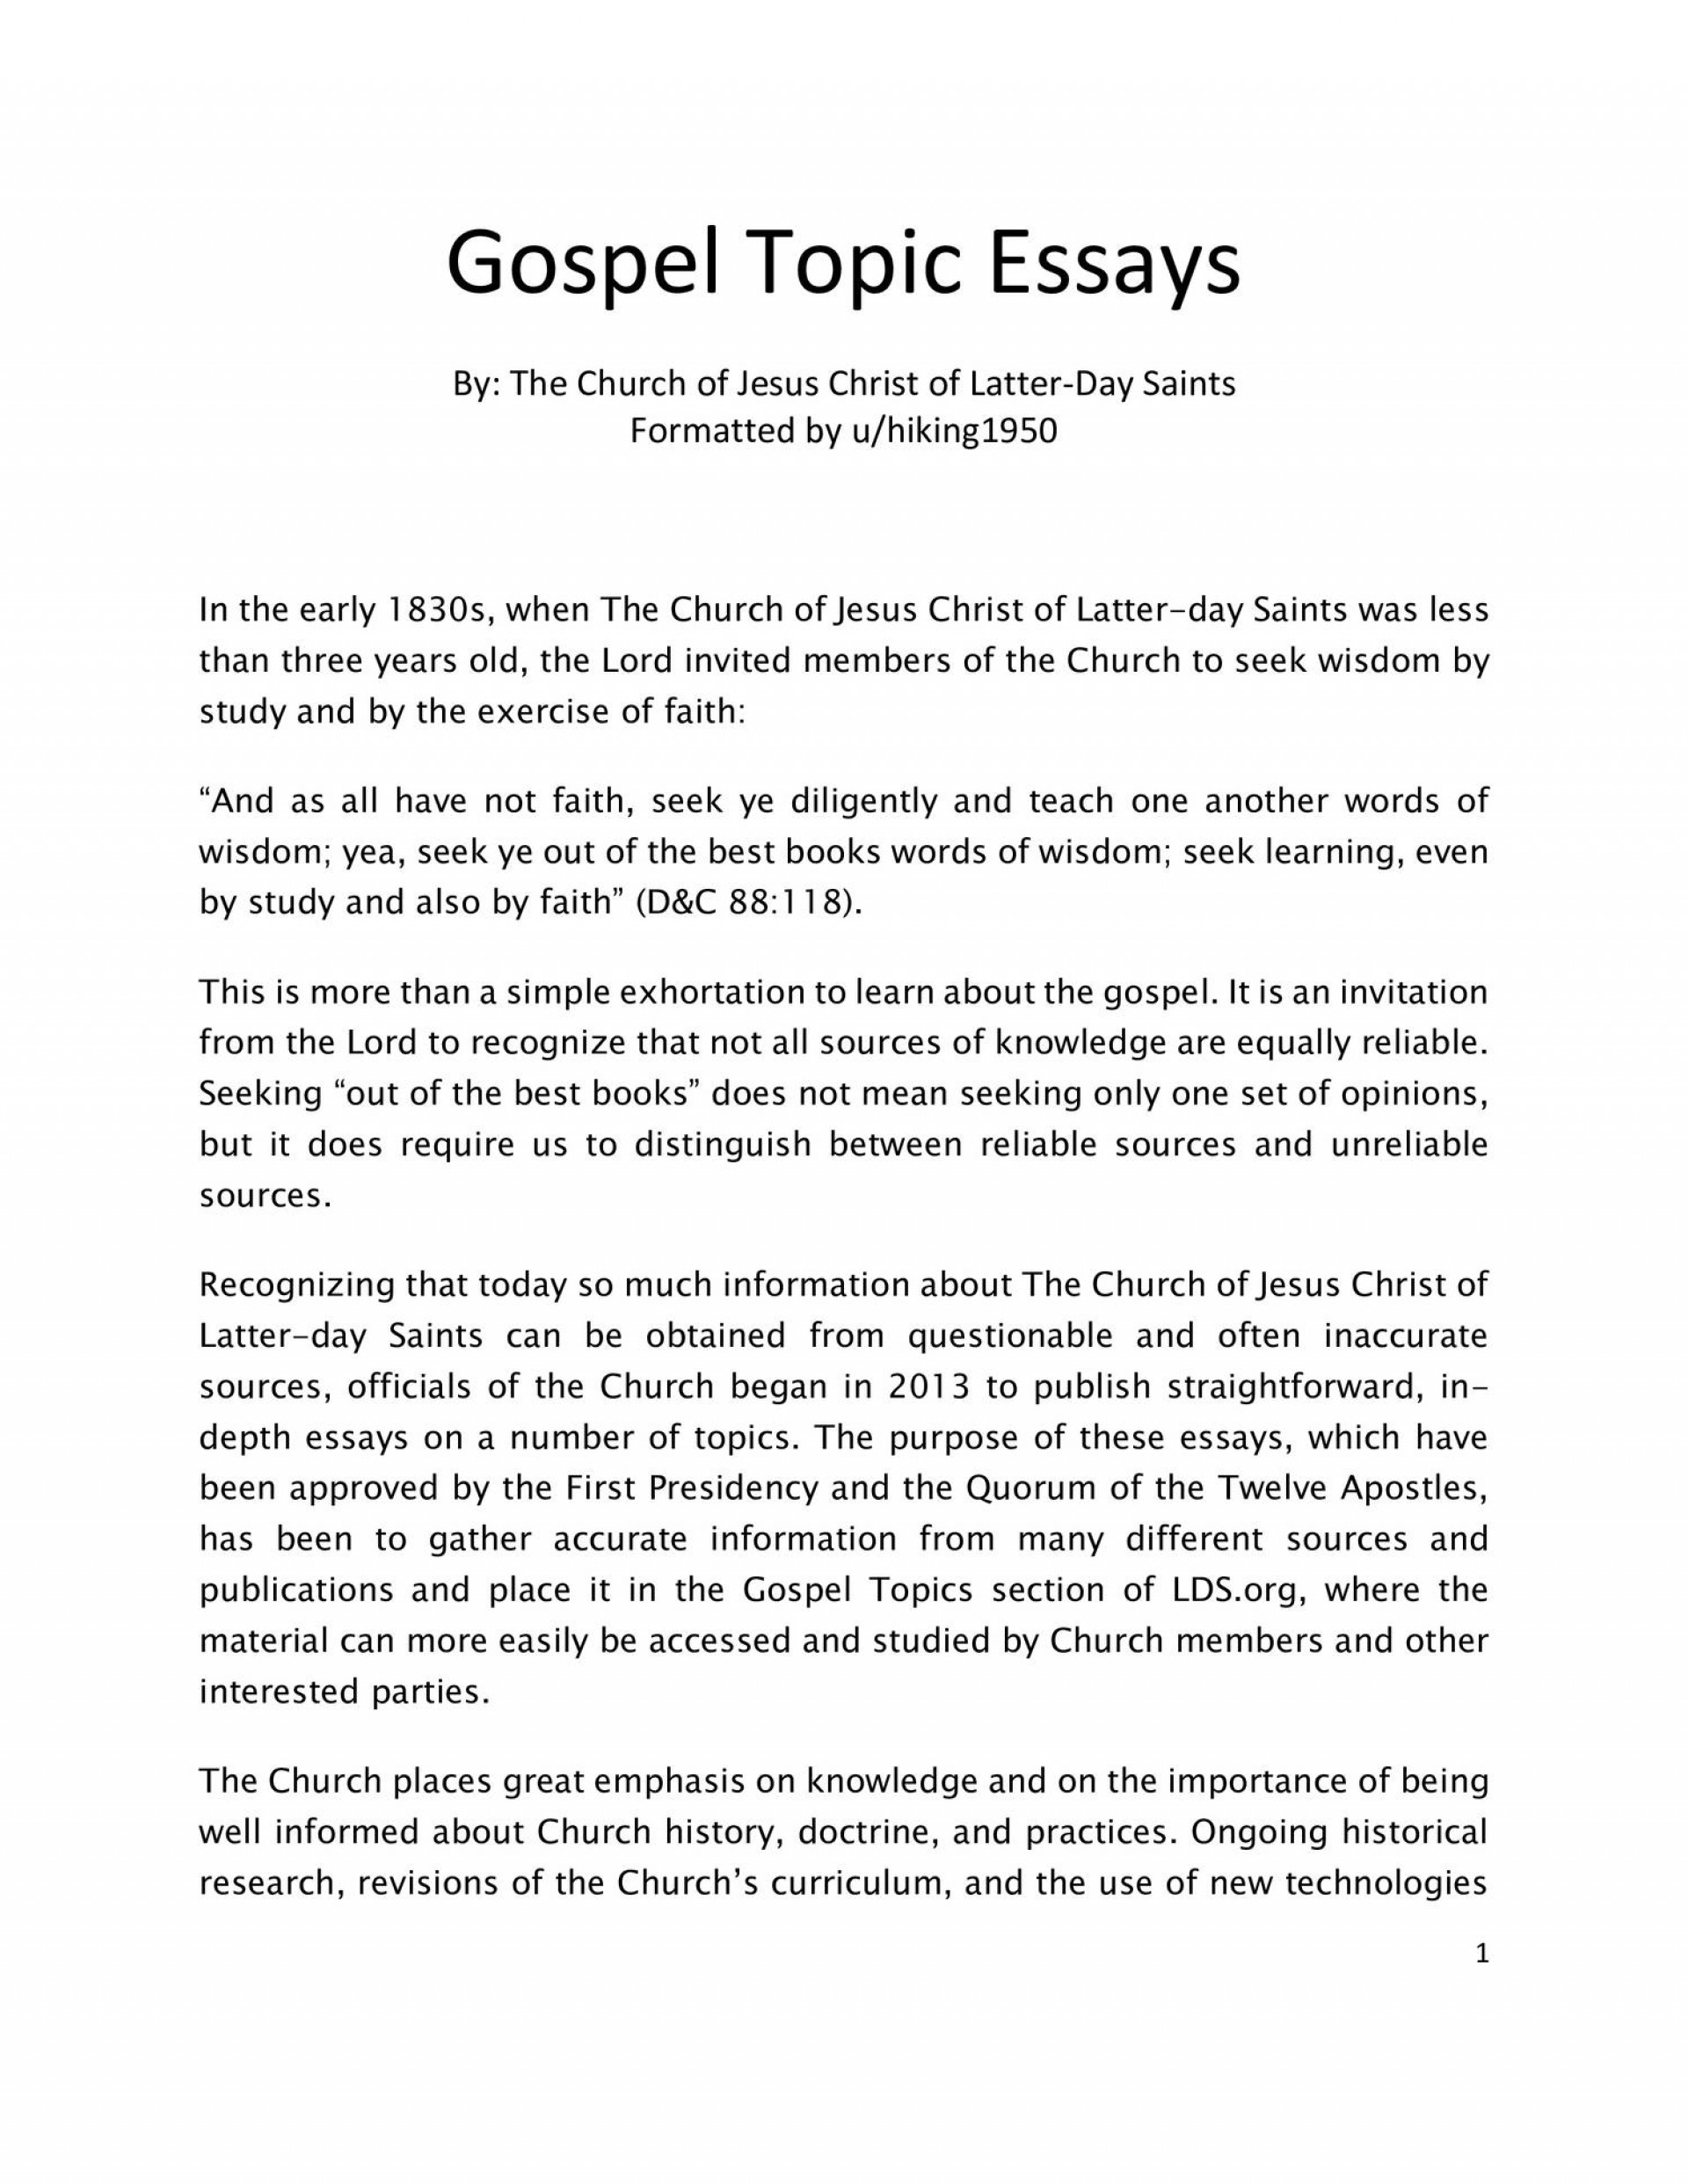 017 Gospel Topic Essays Topics Essay Outstanding Pdf Plural Marriage Becoming Like God 1920